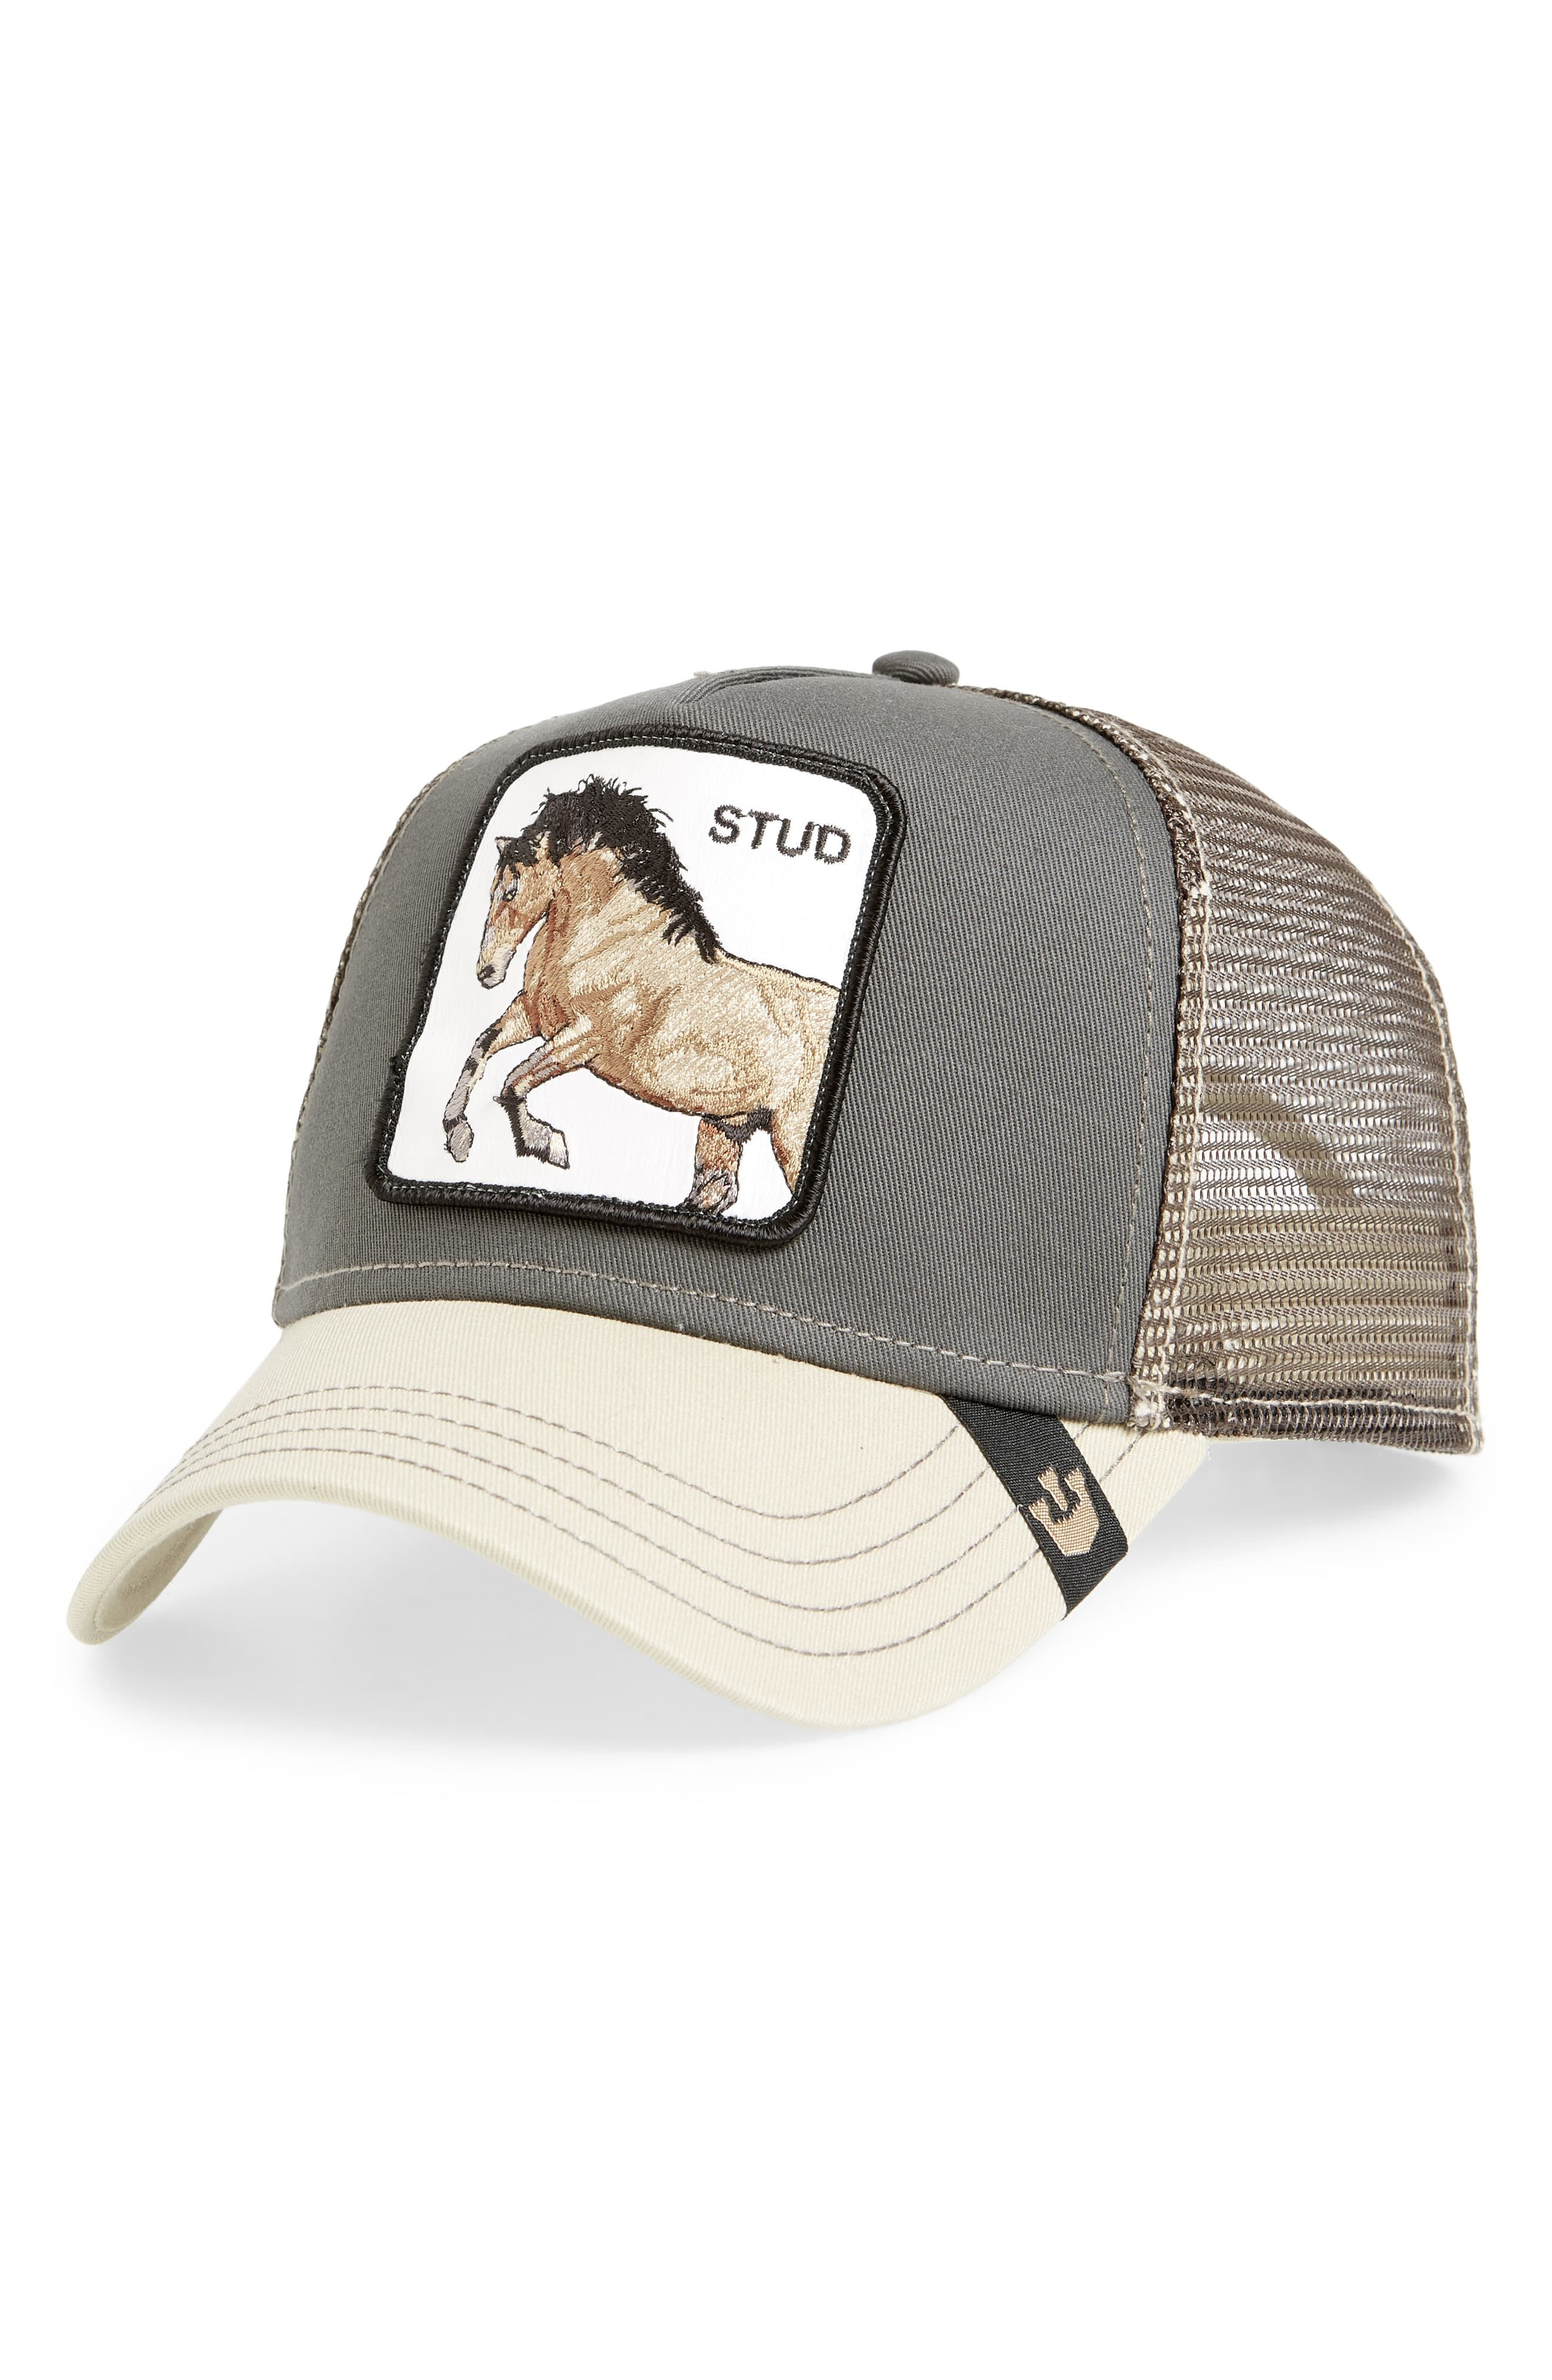 9799116d Goorin Bros. You Stud Trucker Hat in 2019   Products   Hats, Hats ...